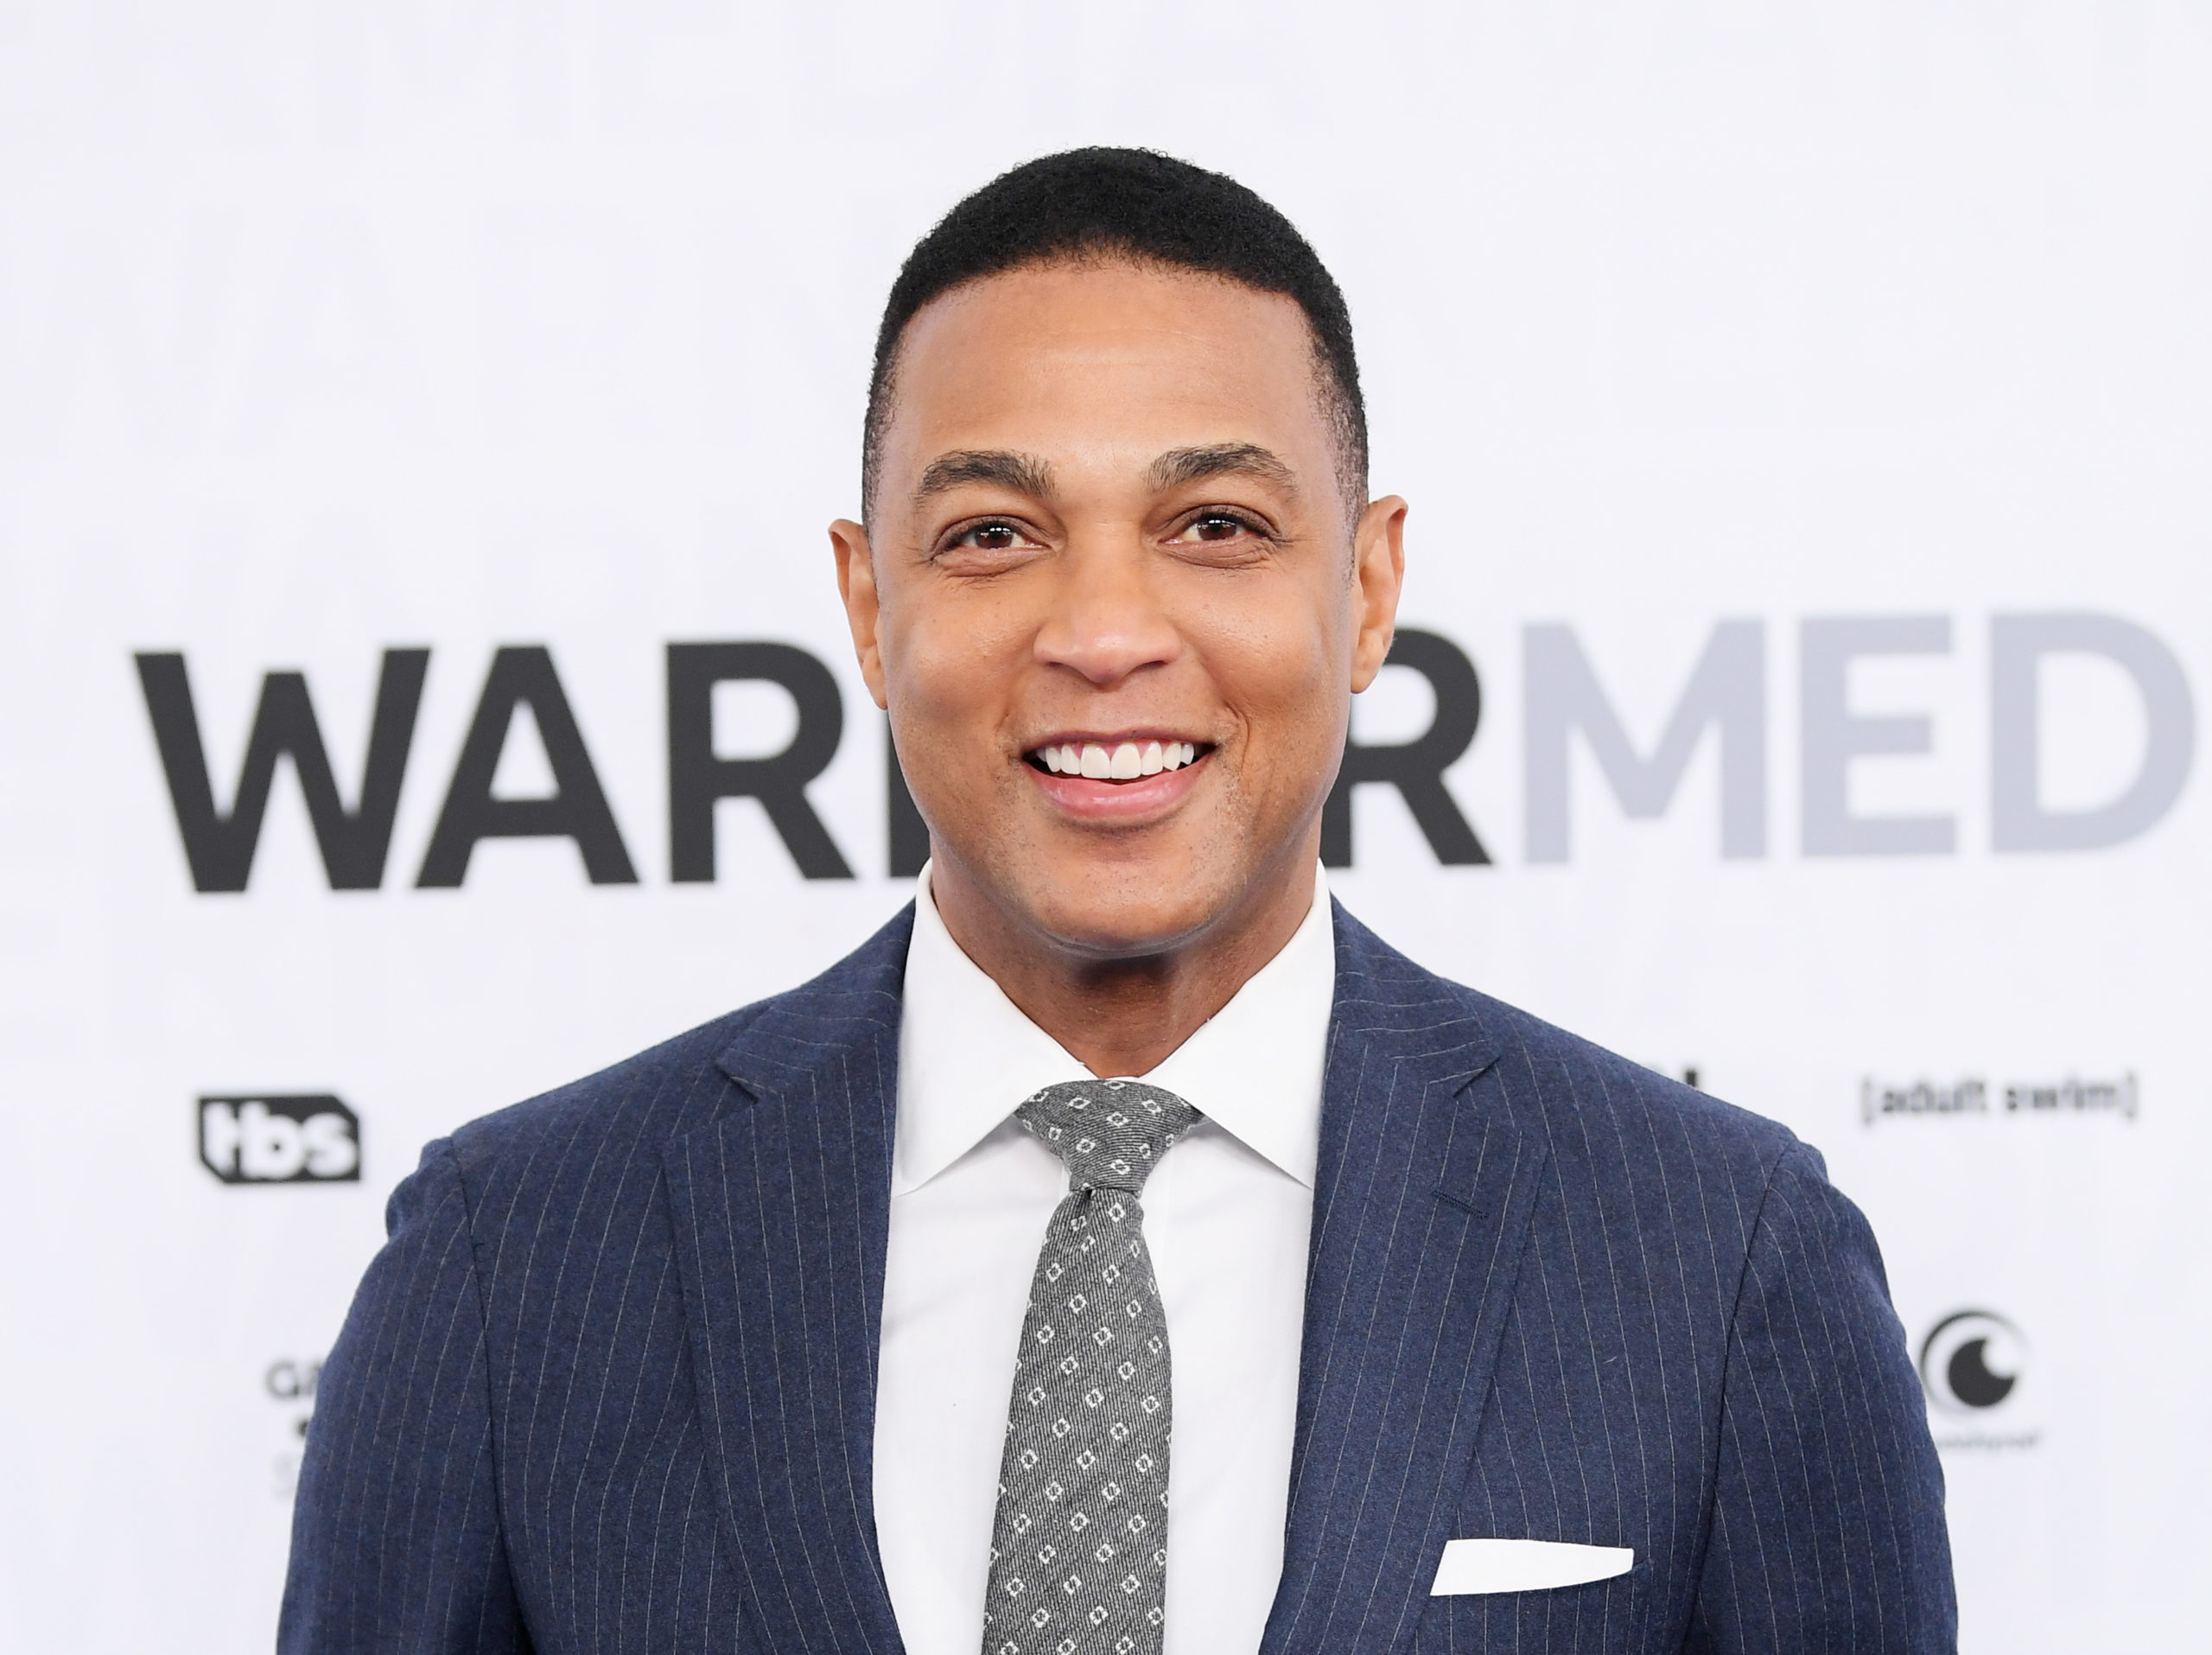 Don Lemon of CNN Tonight with Don Lemon attends the WarnerMedia Upfront 2019 arrivals on the red carpet at The Theater at Madison Square Garden on May 15, 2019 in New York City. 602140 (Photo by Dimitrios Kambouris/Getty Images for WarnerMedia)